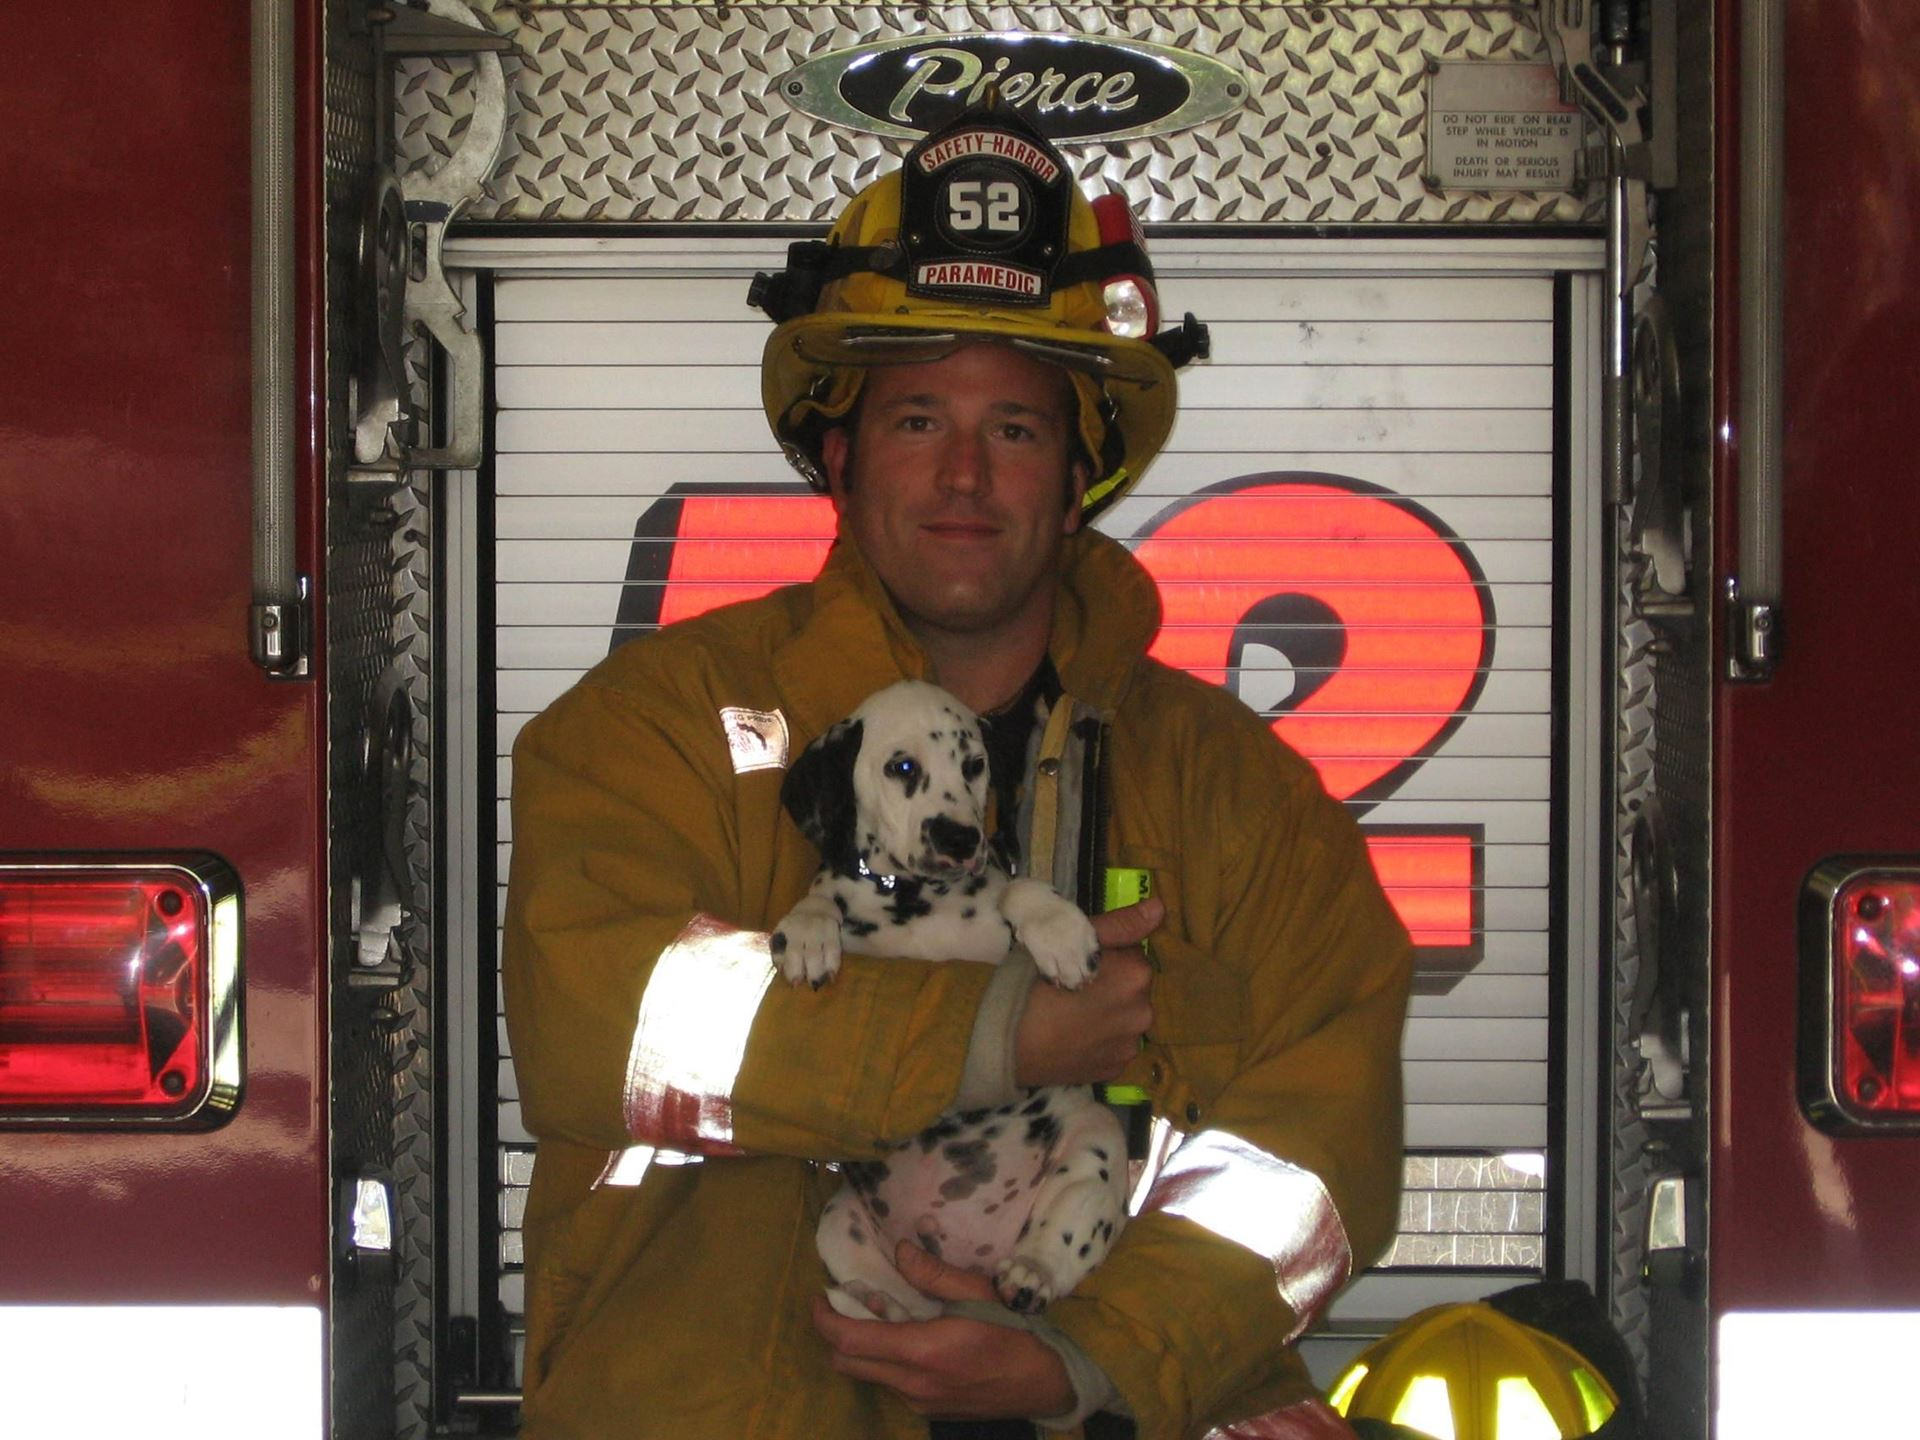 A firefighter holds a dalmation puppy